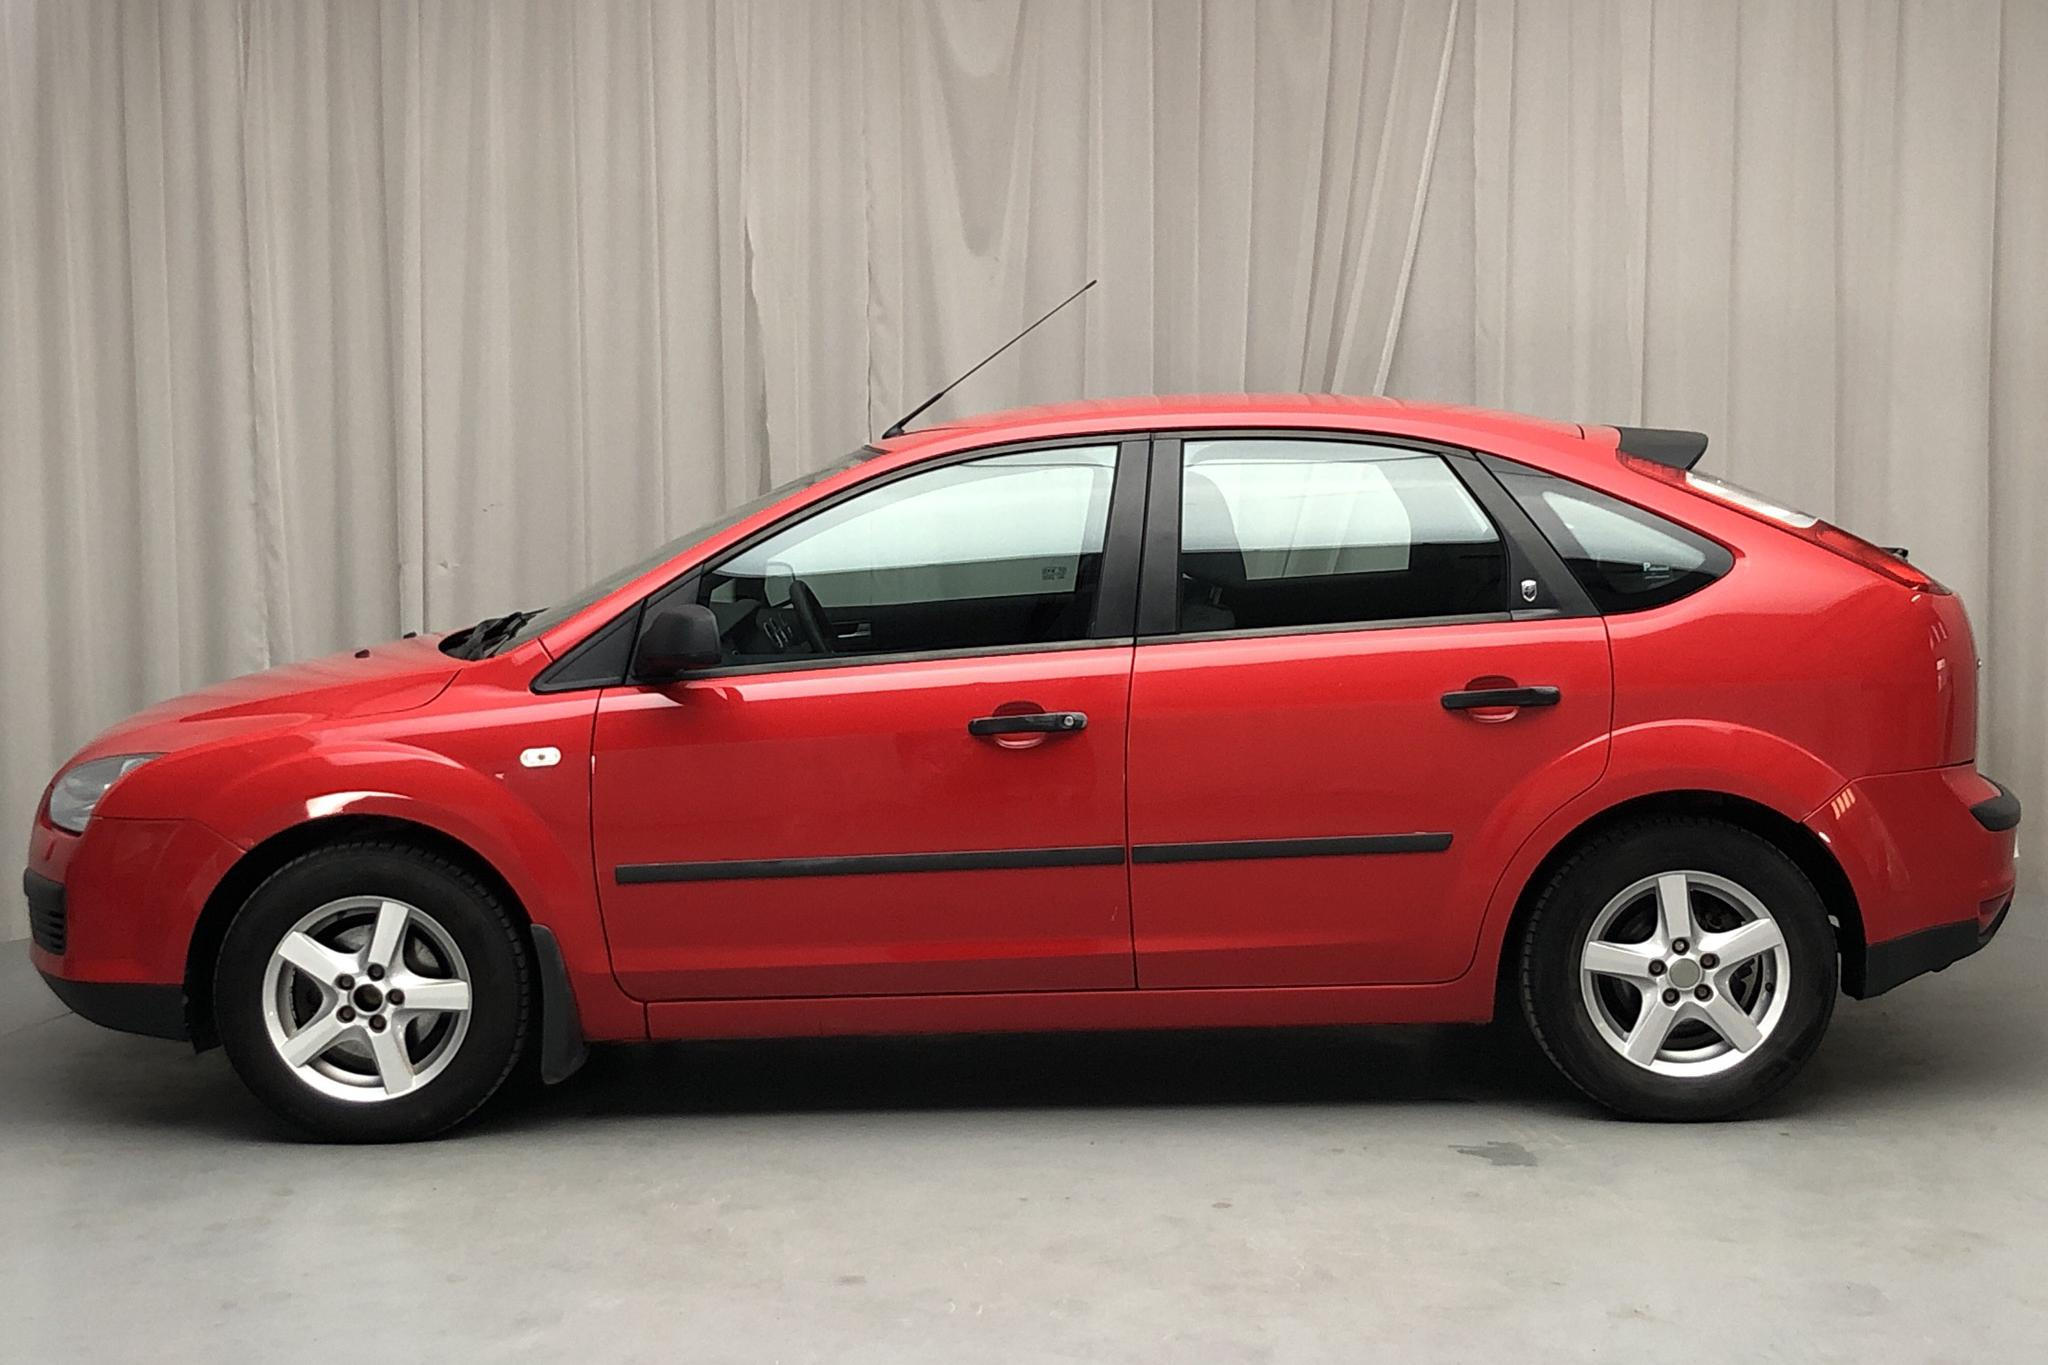 Ford Focus 1.8 Flexifuel 5dr (125hk) - 147 010 km - Manual - red - 2006